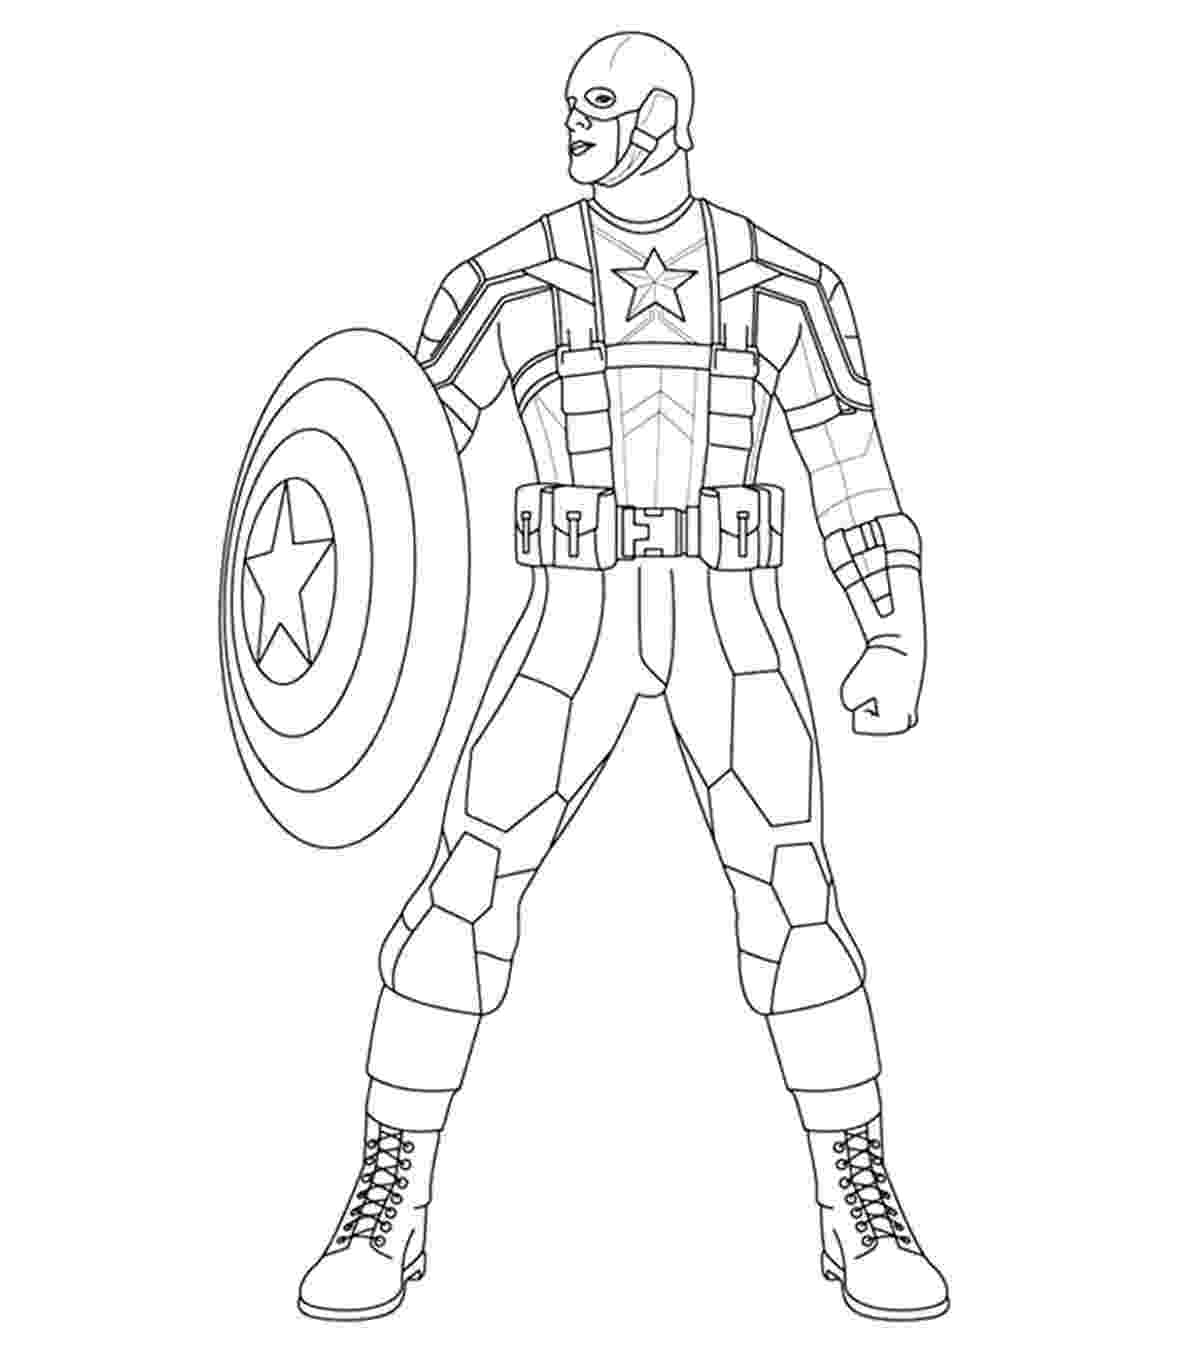 coloring pictures of captain america free printable captain america coloring pages for kids pictures of coloring america captain